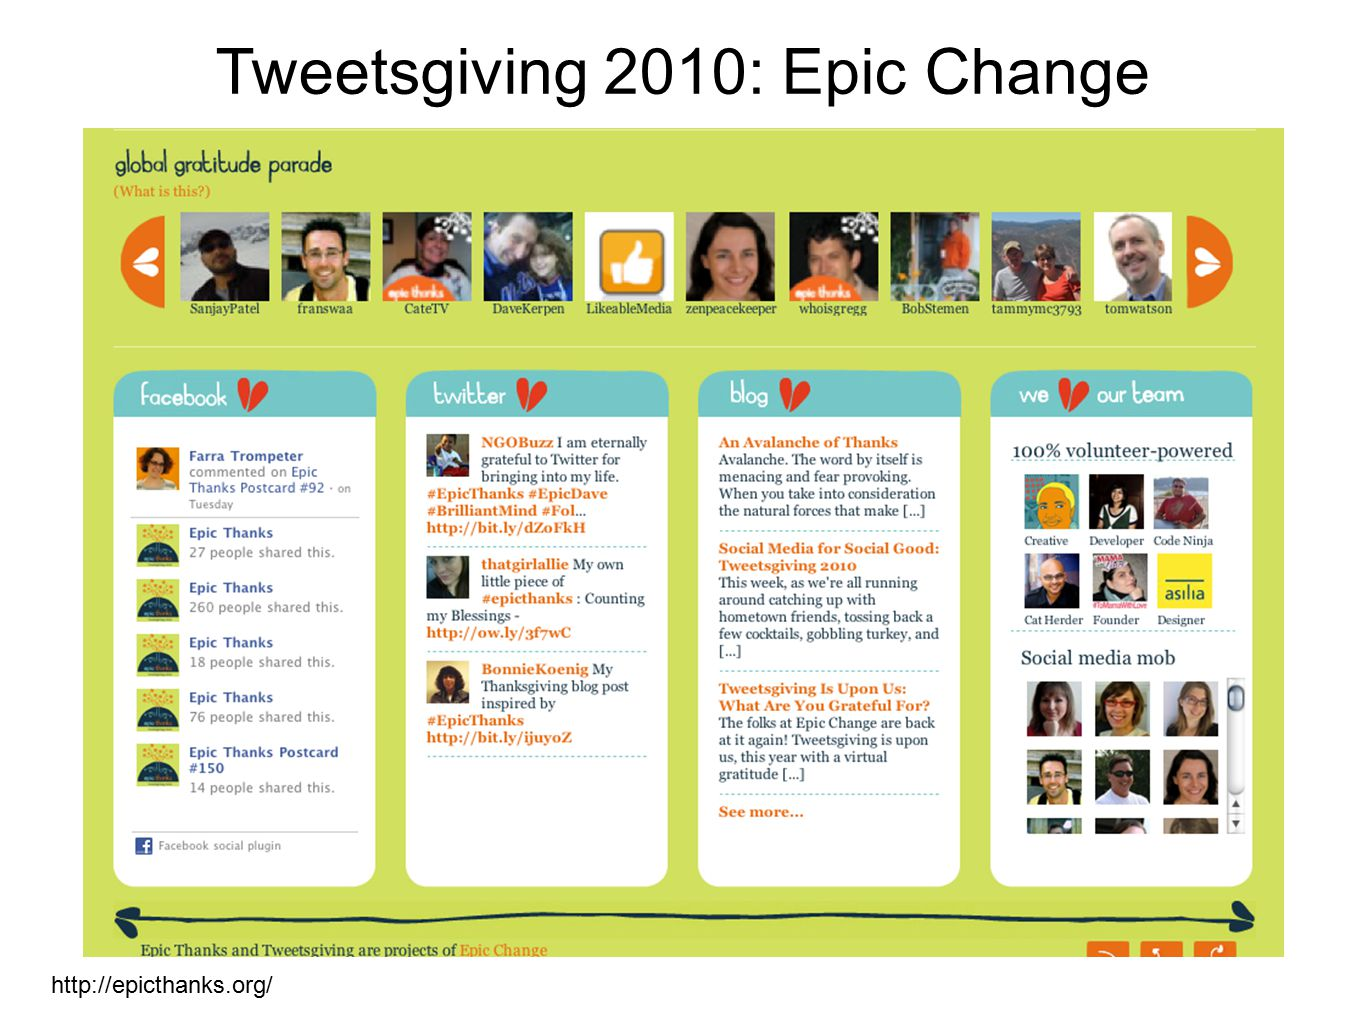 Tweetsgiving 2010: Epic Change http://epicthanks.org/